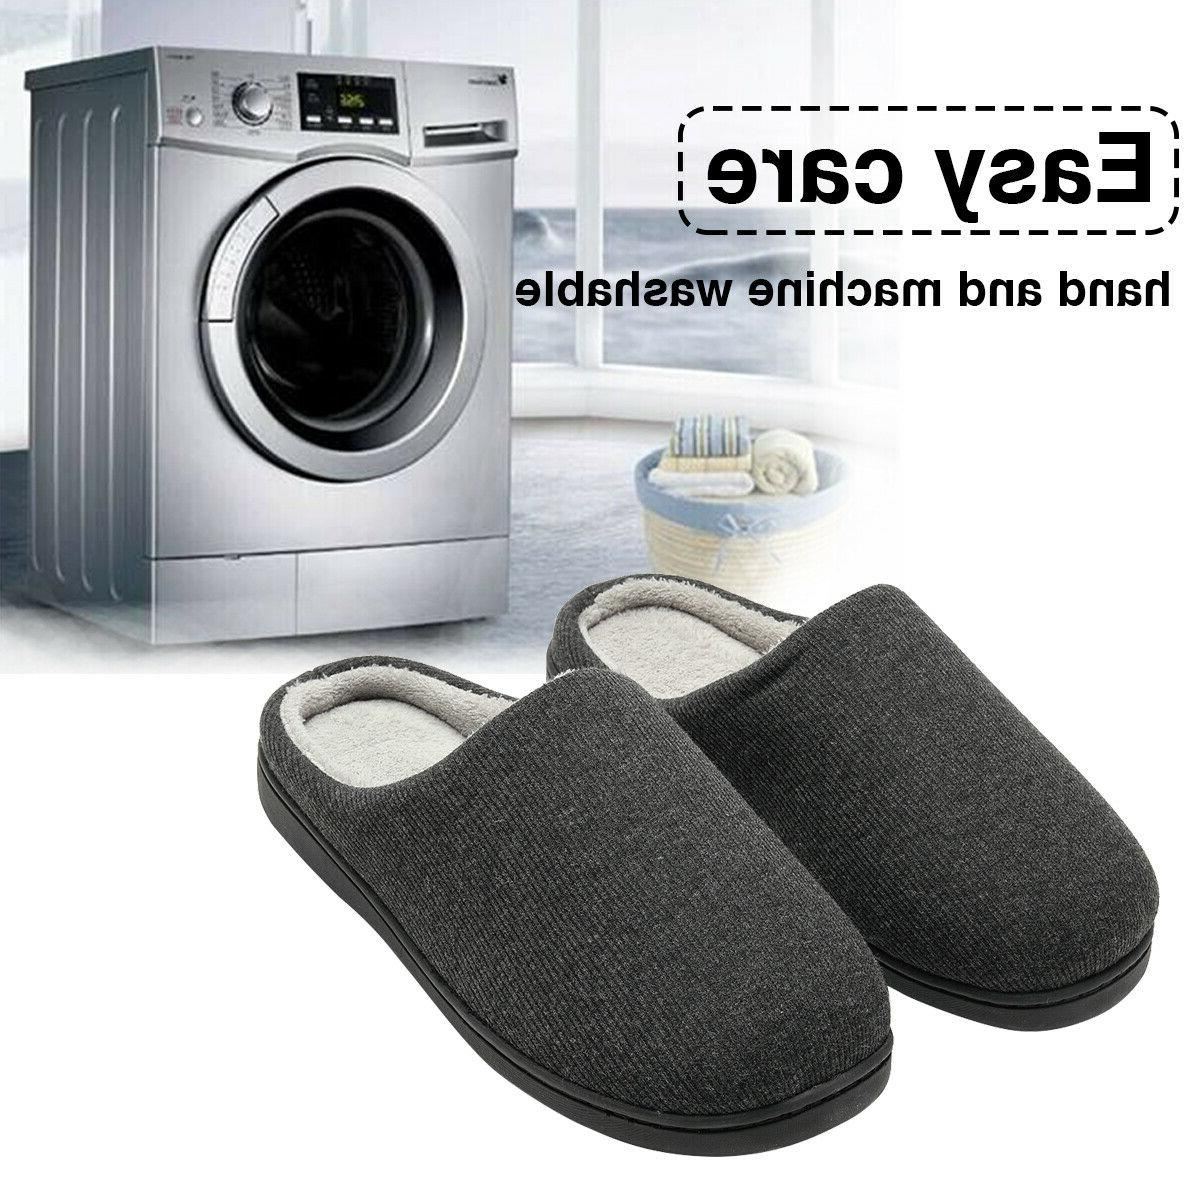 Men's Cozy Winter Slippers Knitted Cotton